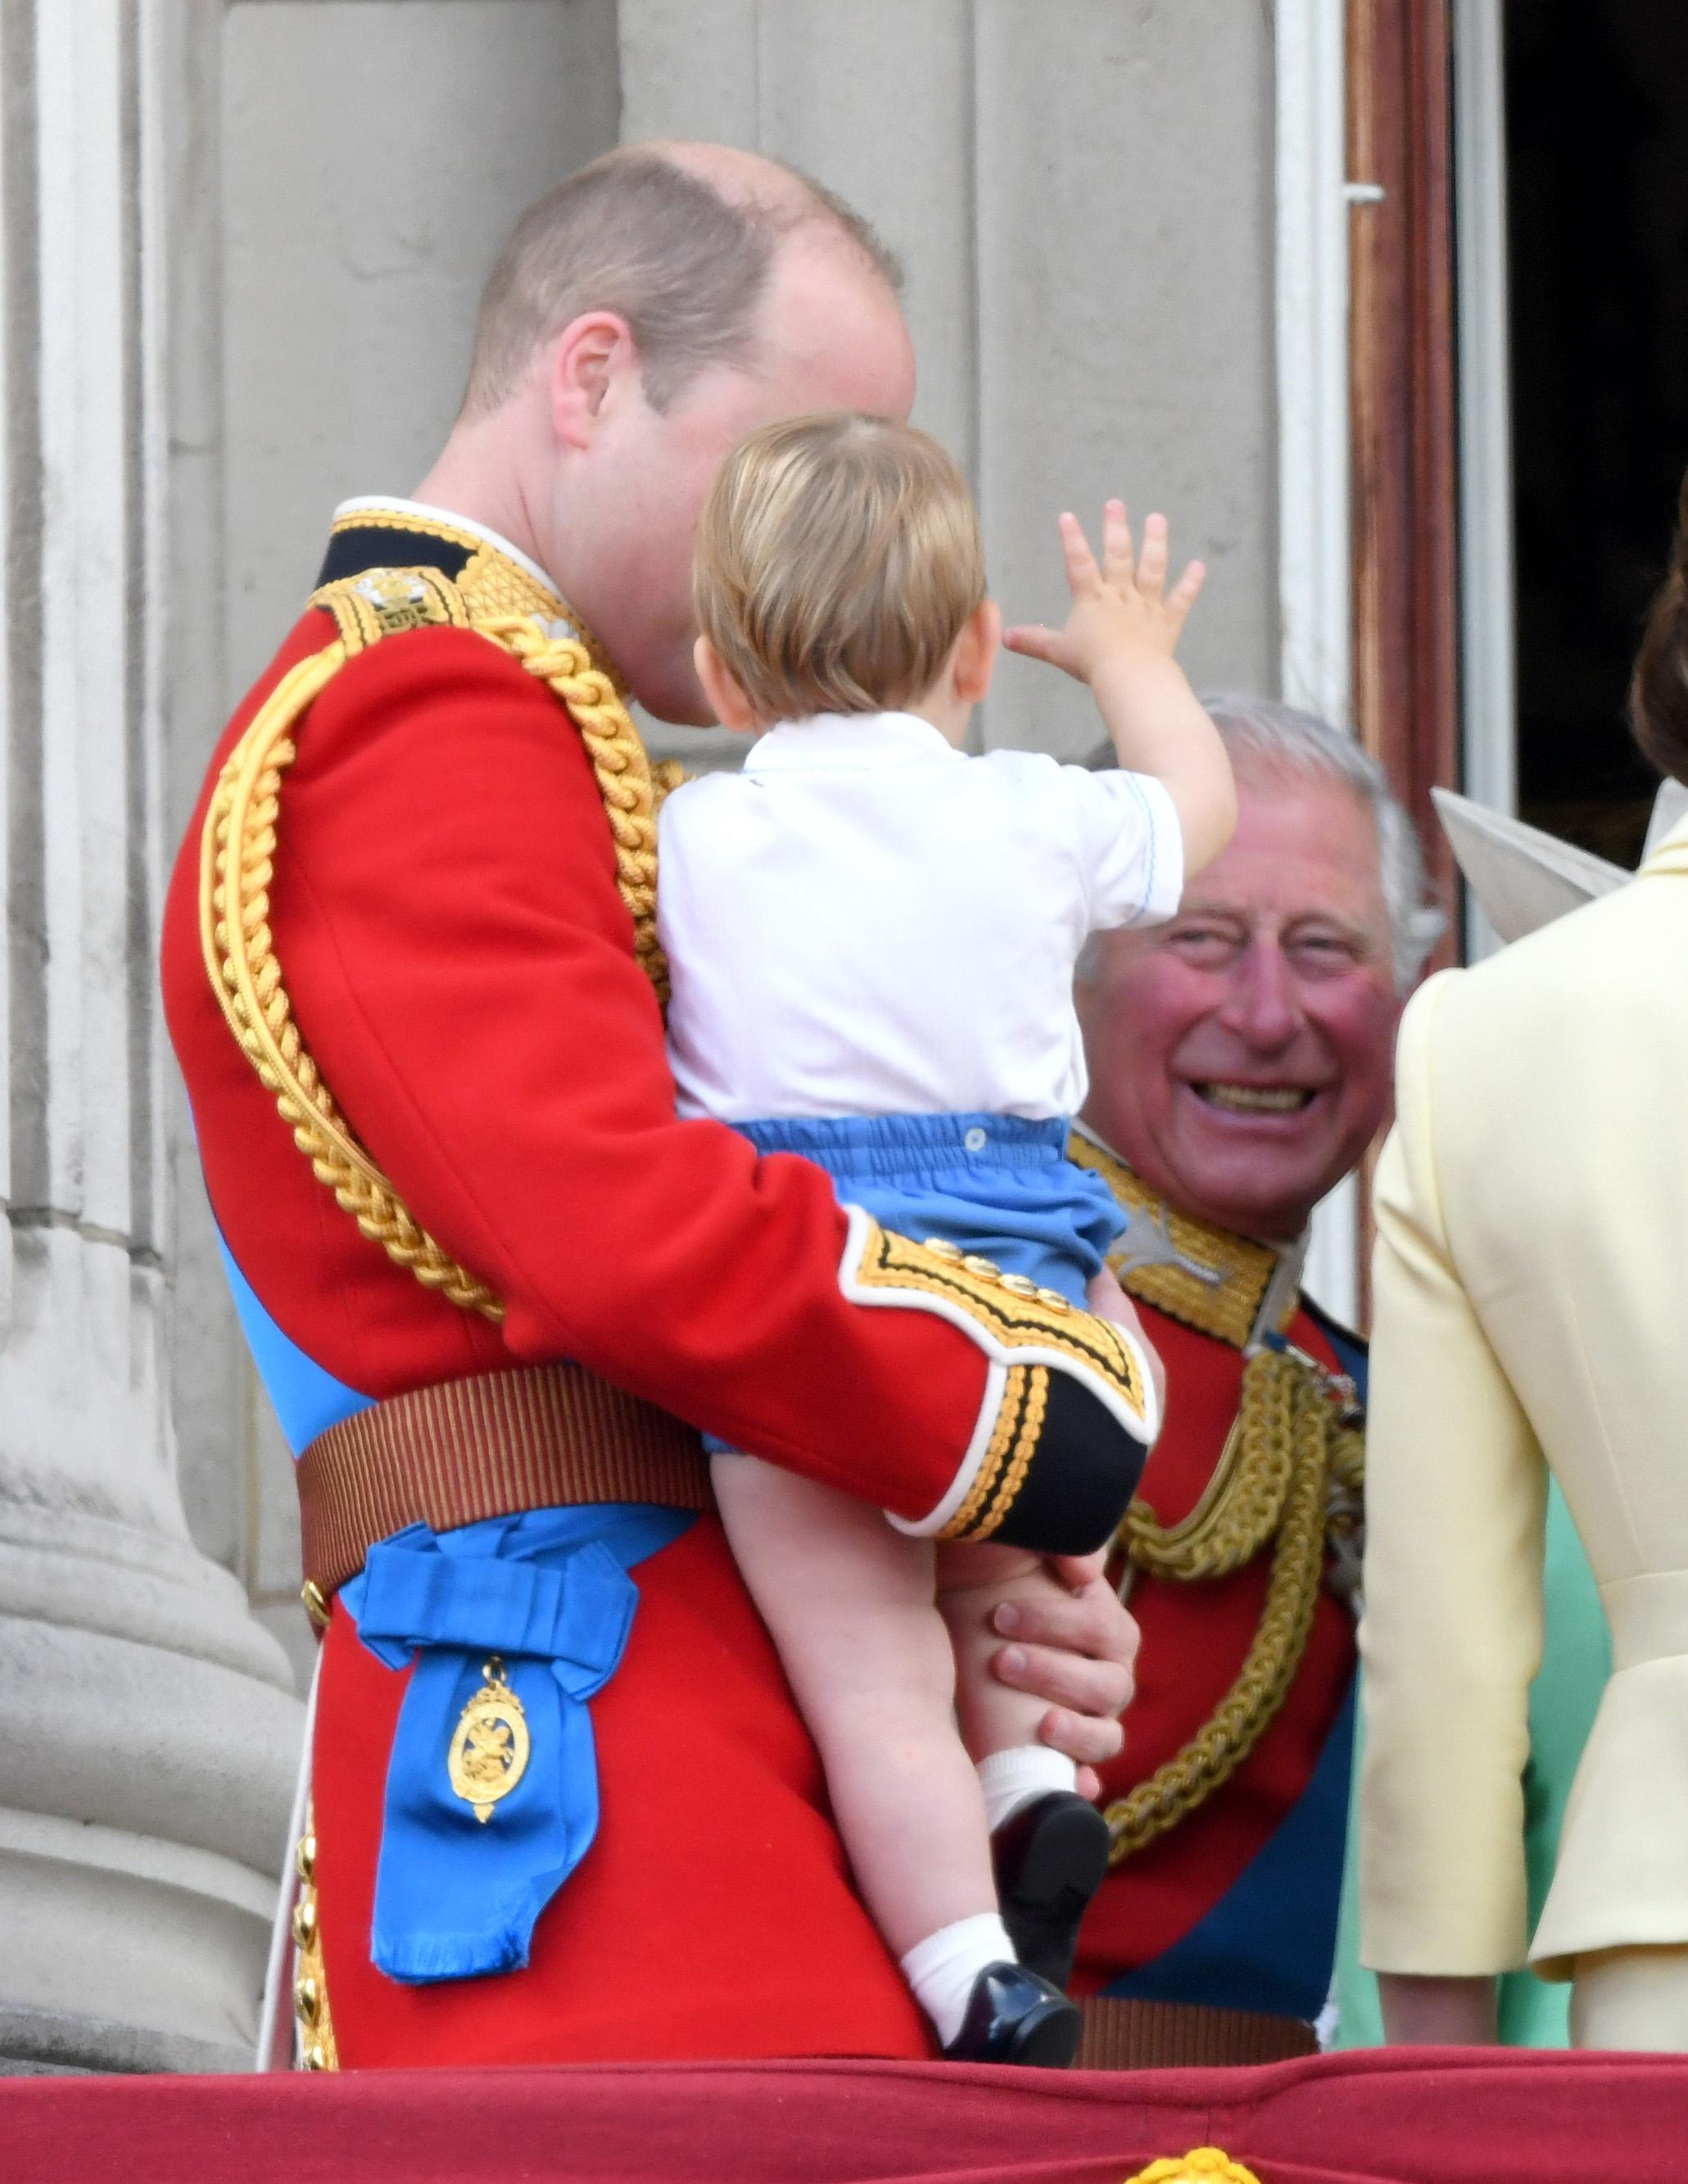 LONDON, ENGLAND - JUNE 08: Prince Louis, Prince William, Duke of Cambridge and Prince Charles, Prince of Wales appear on the balcony during Trooping The Colour, the Queen's annual birthday parade, on June 08, 2019 in London, England. (Photo by Karwai Tang/WireImage)